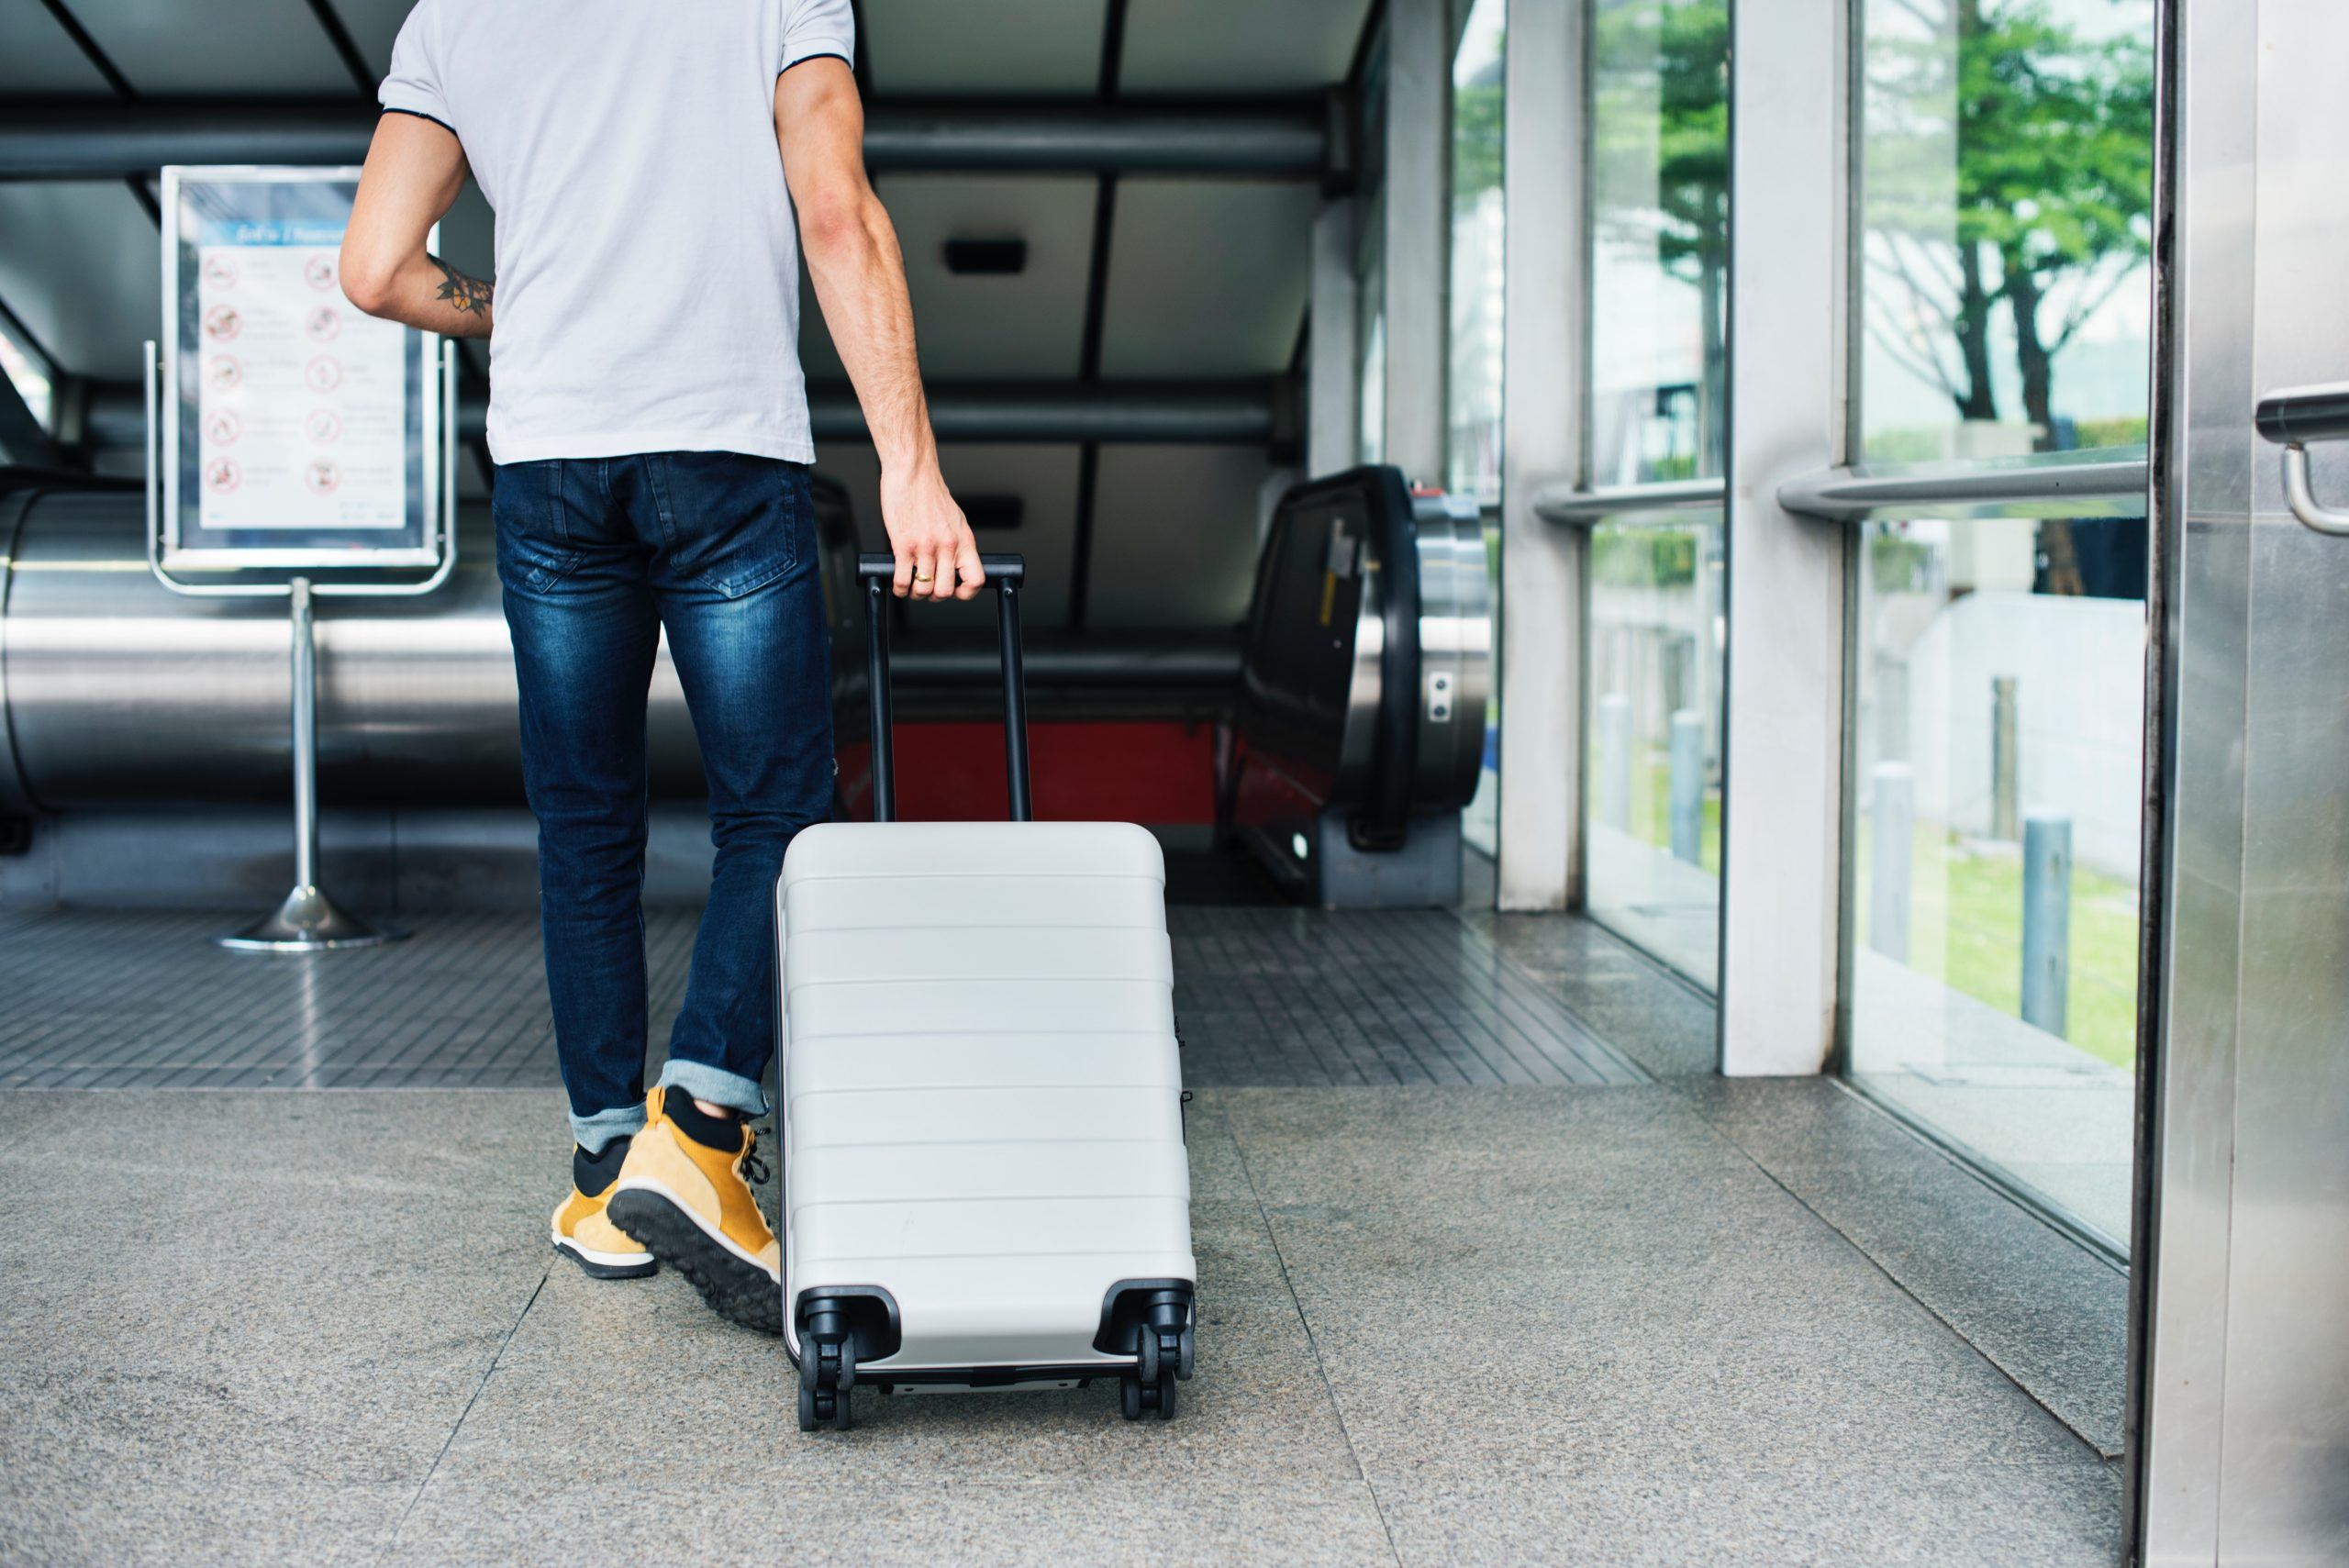 adult airport arriving 1457691 - Hotels In Harare Not Keeping Their Promises? Here Are Five Tips On How To Address It